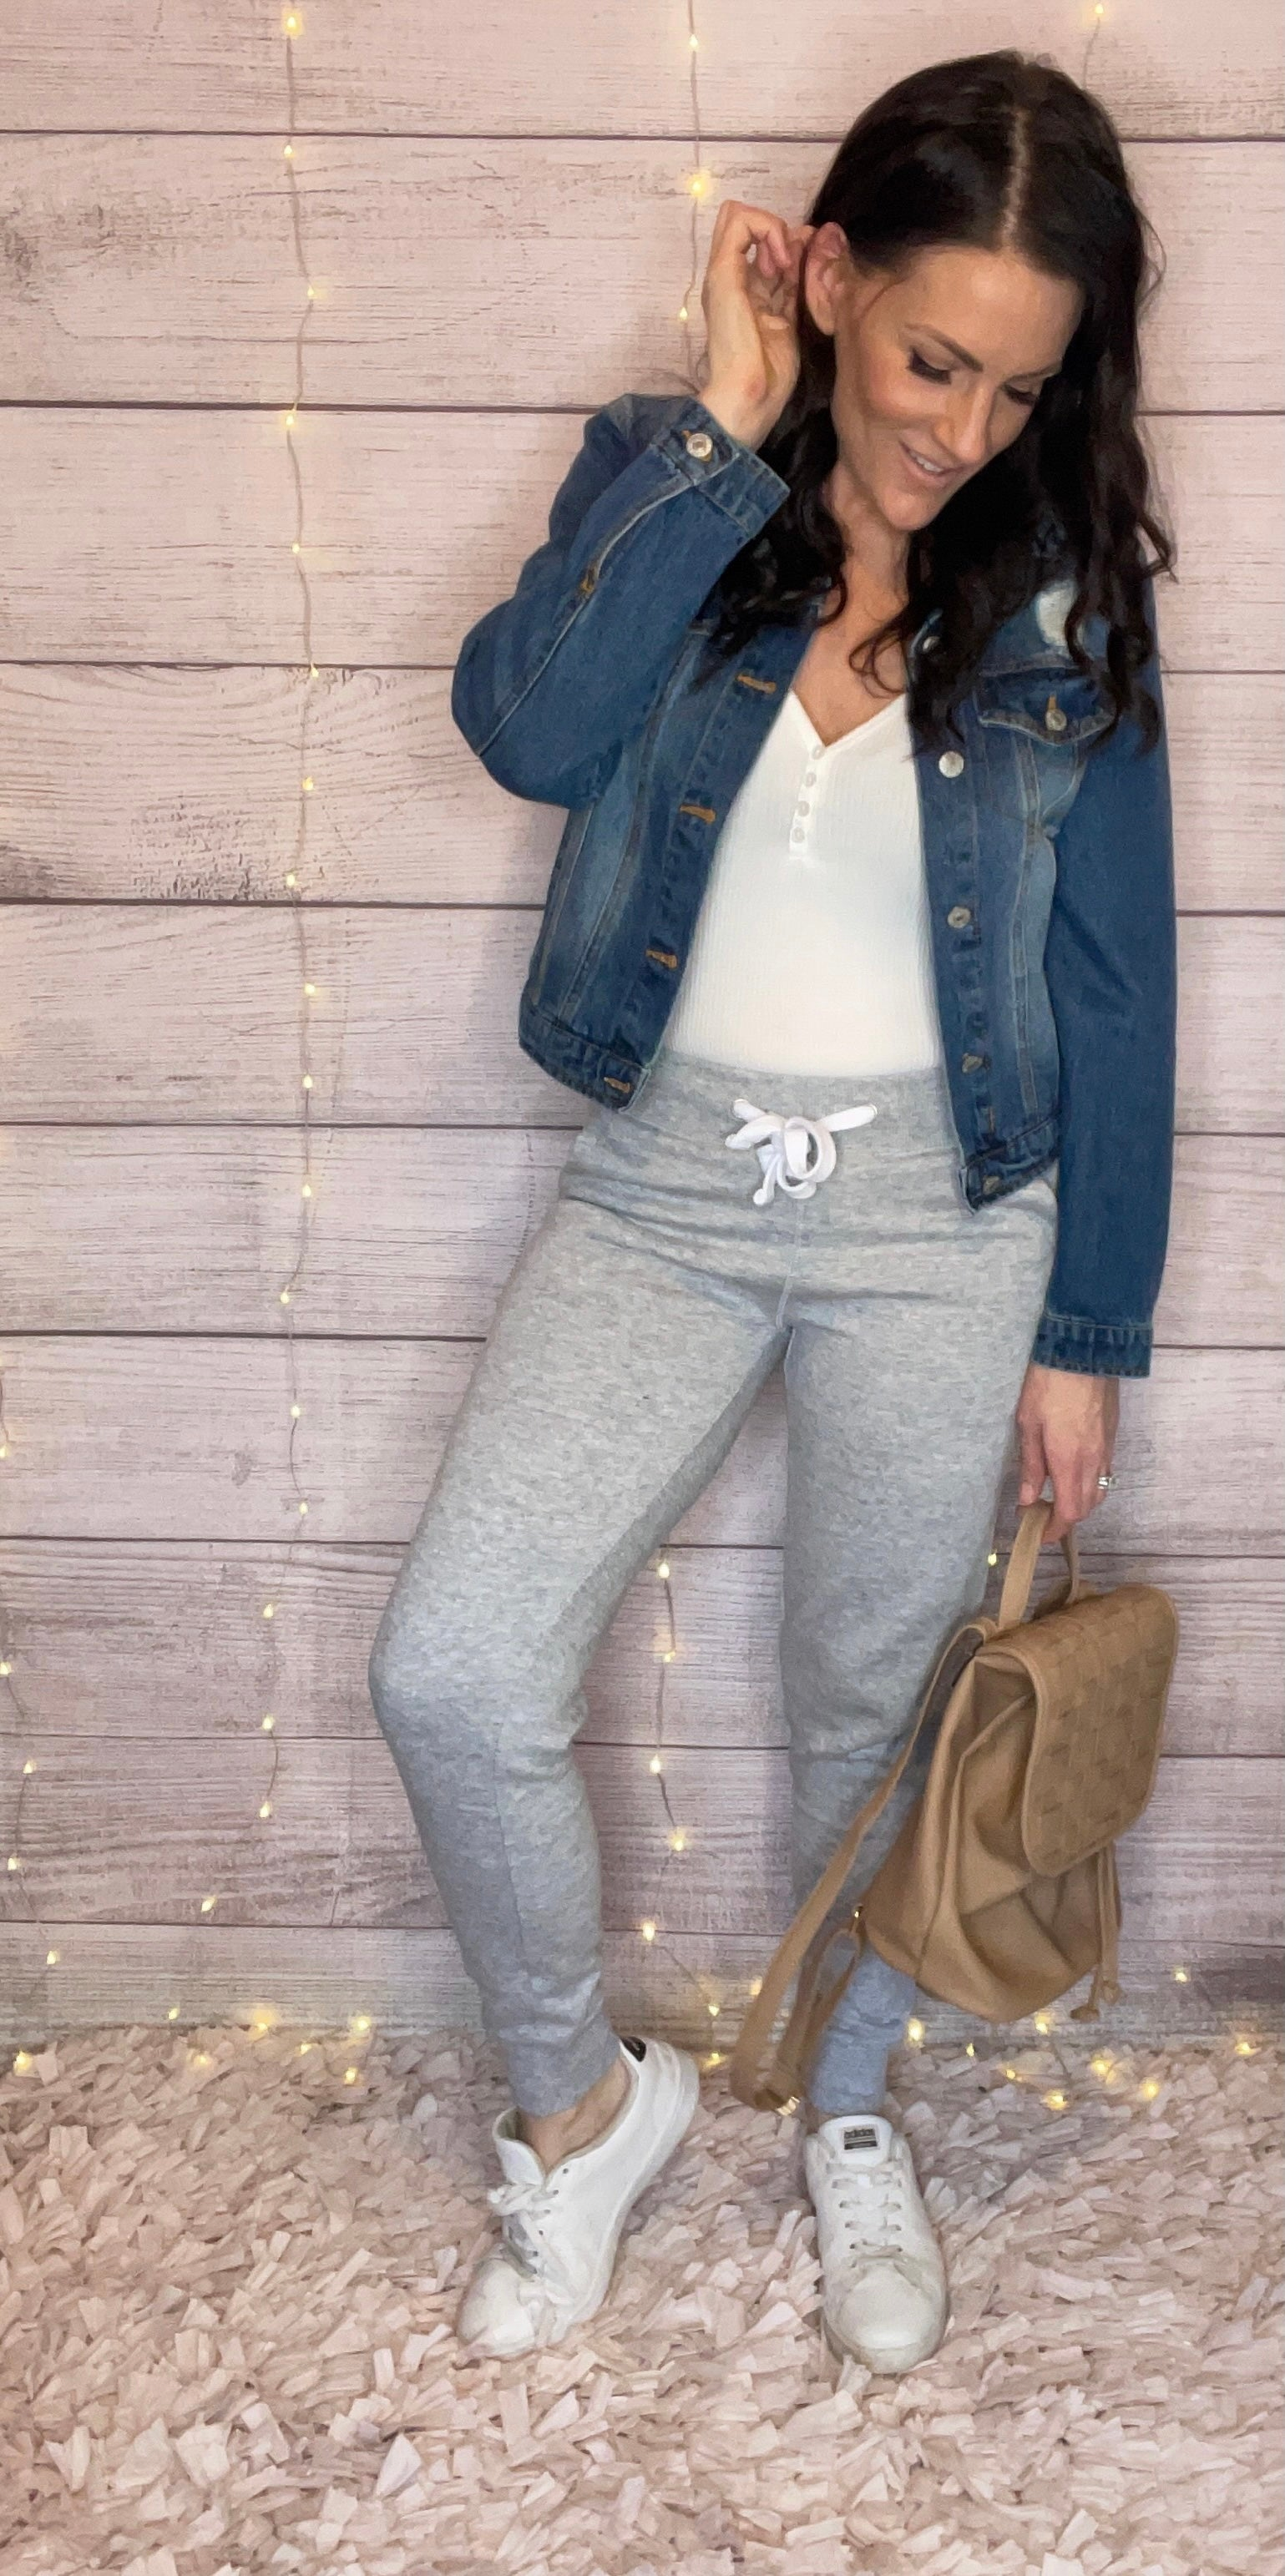 Target Run Joggers In Heather Grey-[option4]-[option5]-[option6]-[option7]-[option8]-Womens-Clothing-Shop